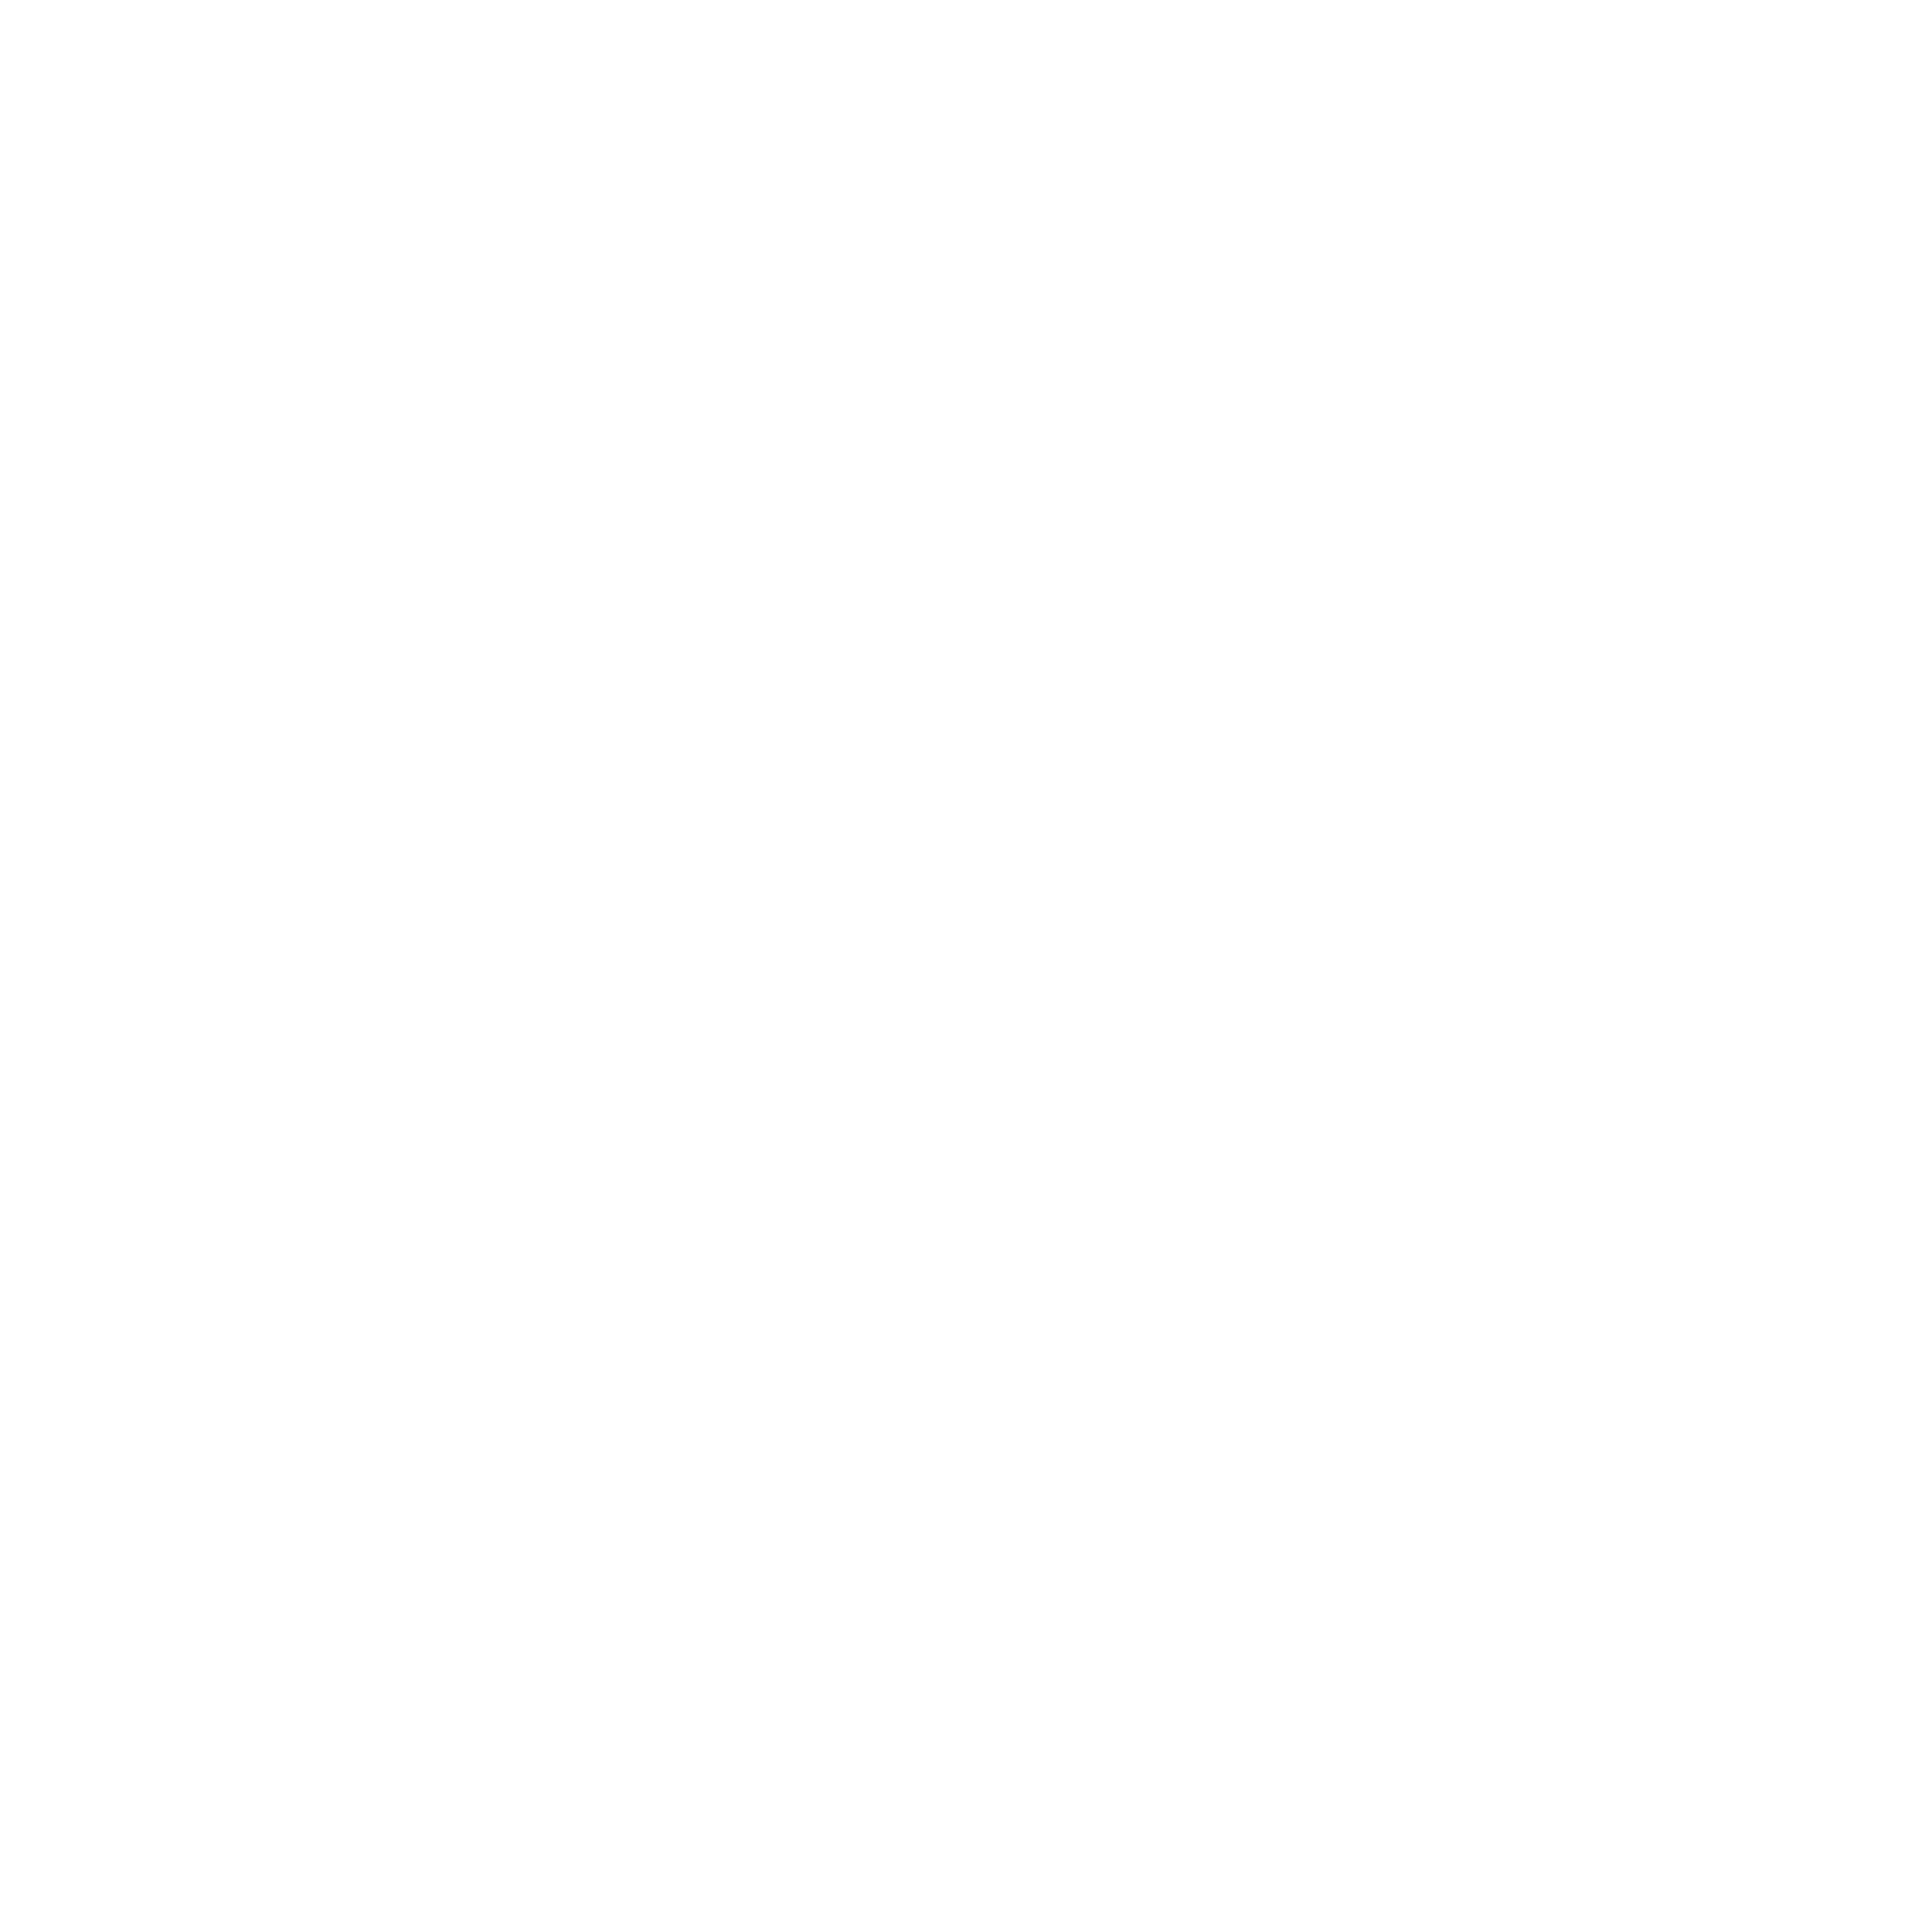 Architecture Competition for student - Kaira looro 2021 Women's house africa